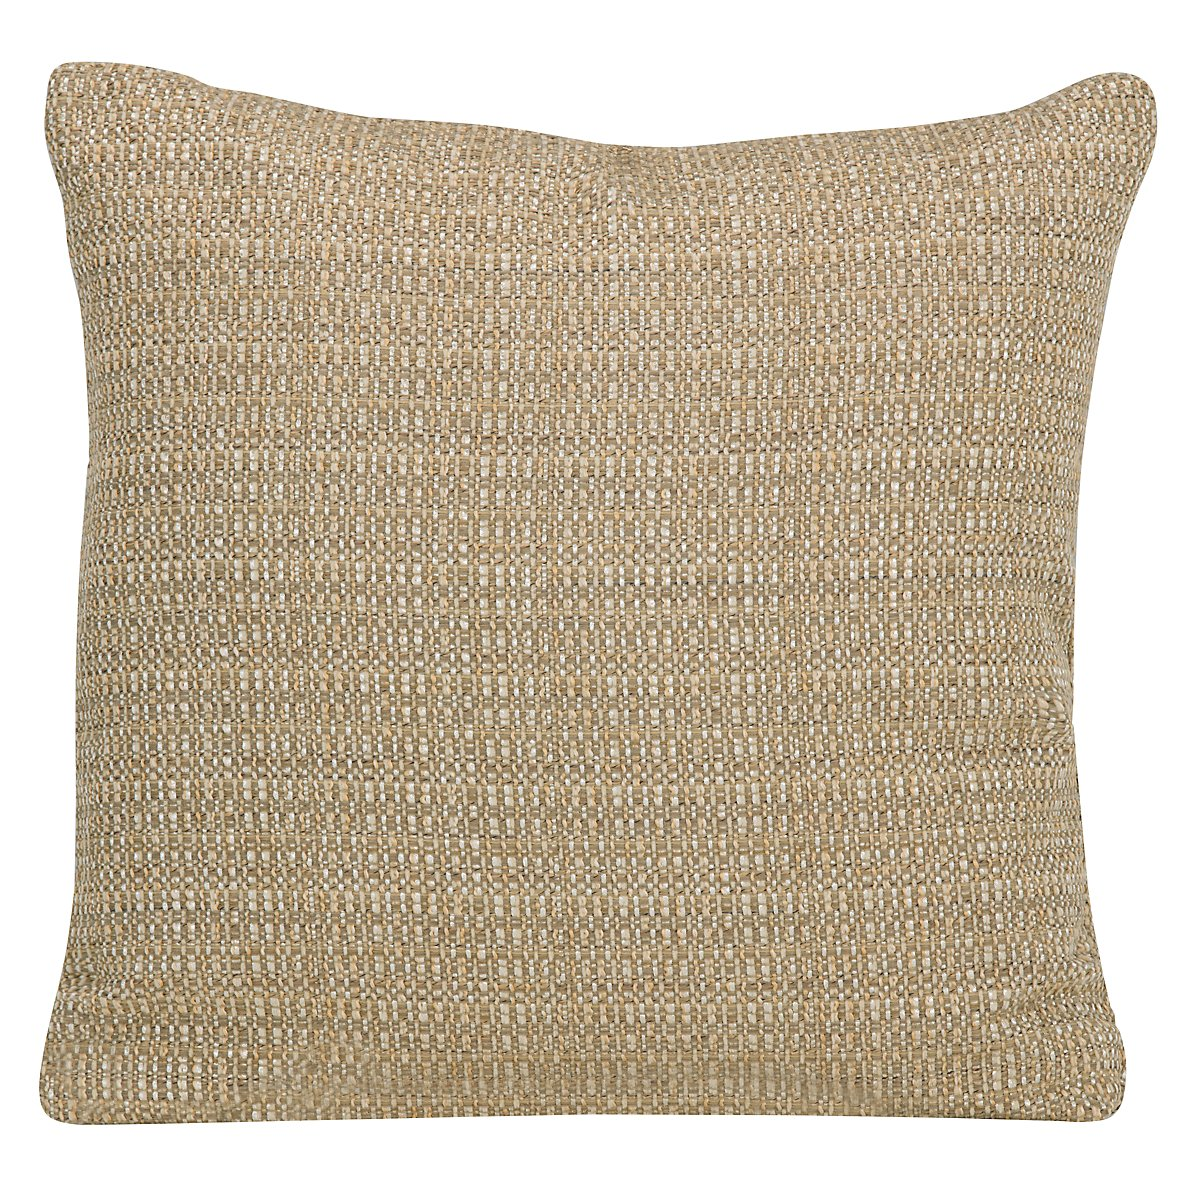 Jackie Gold Fabric Square Accent Pillow